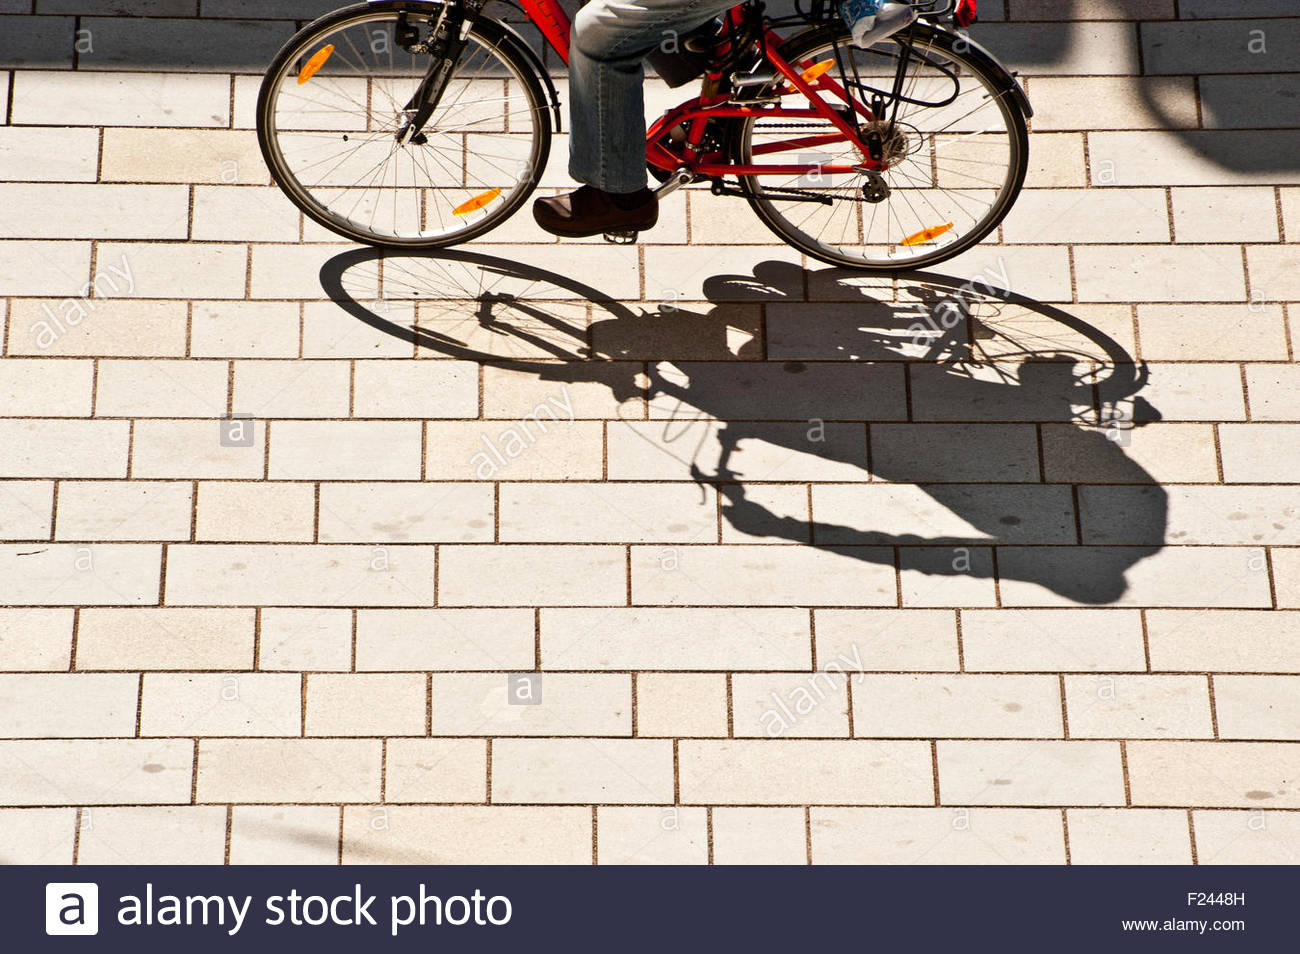 man in bicycle projecting a shadow on the street - Stock Image